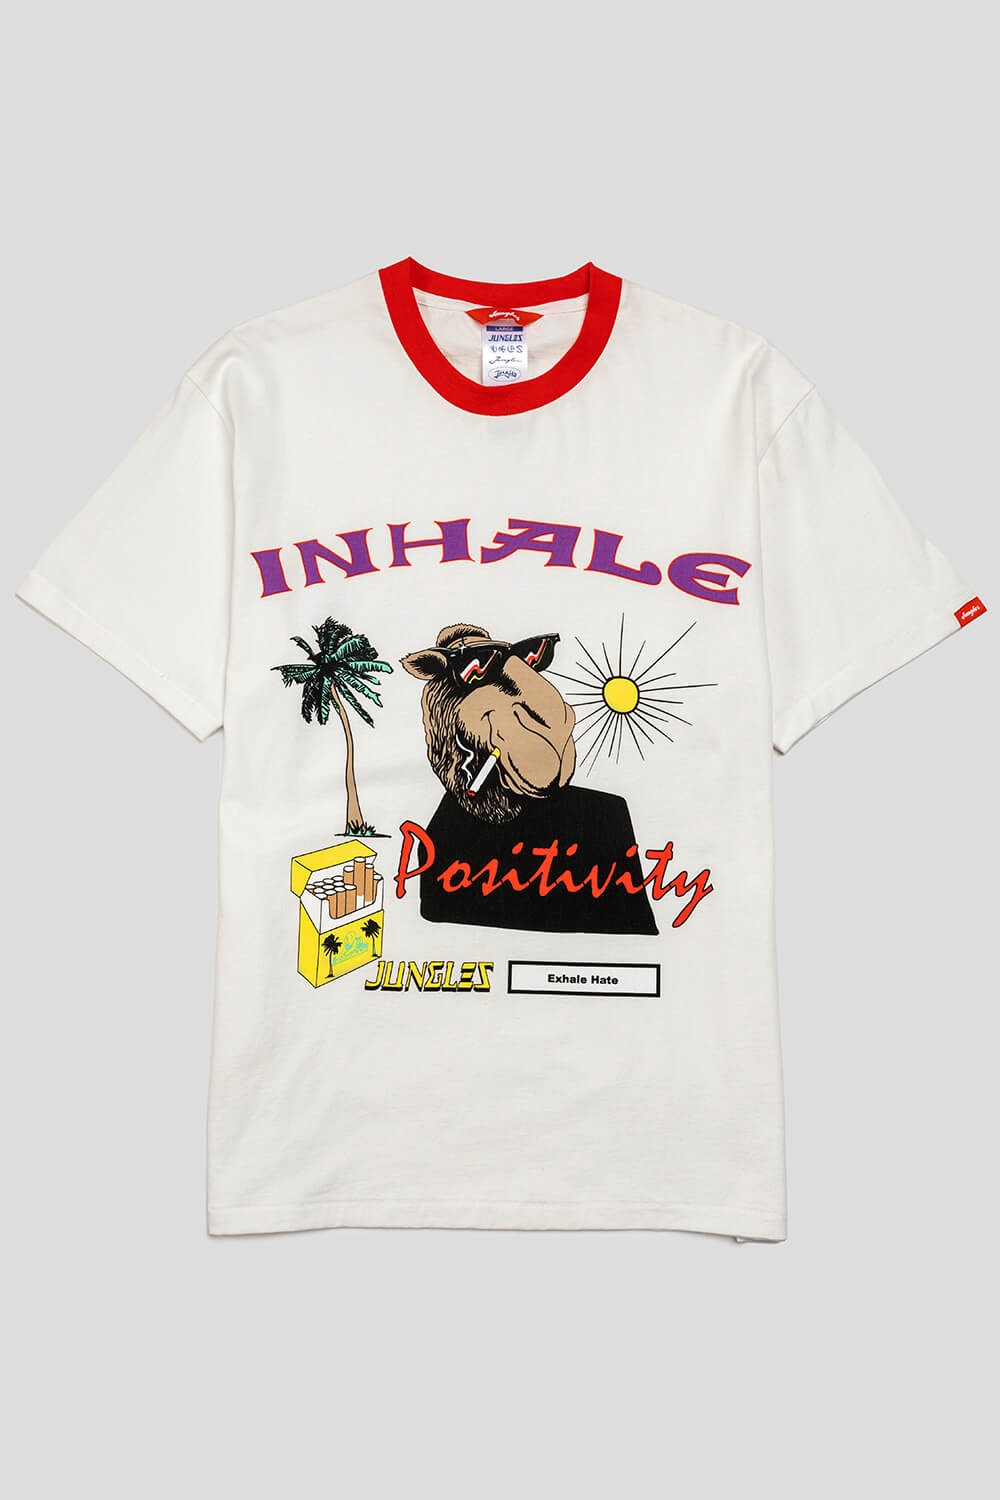 Inhale Positivity Tee